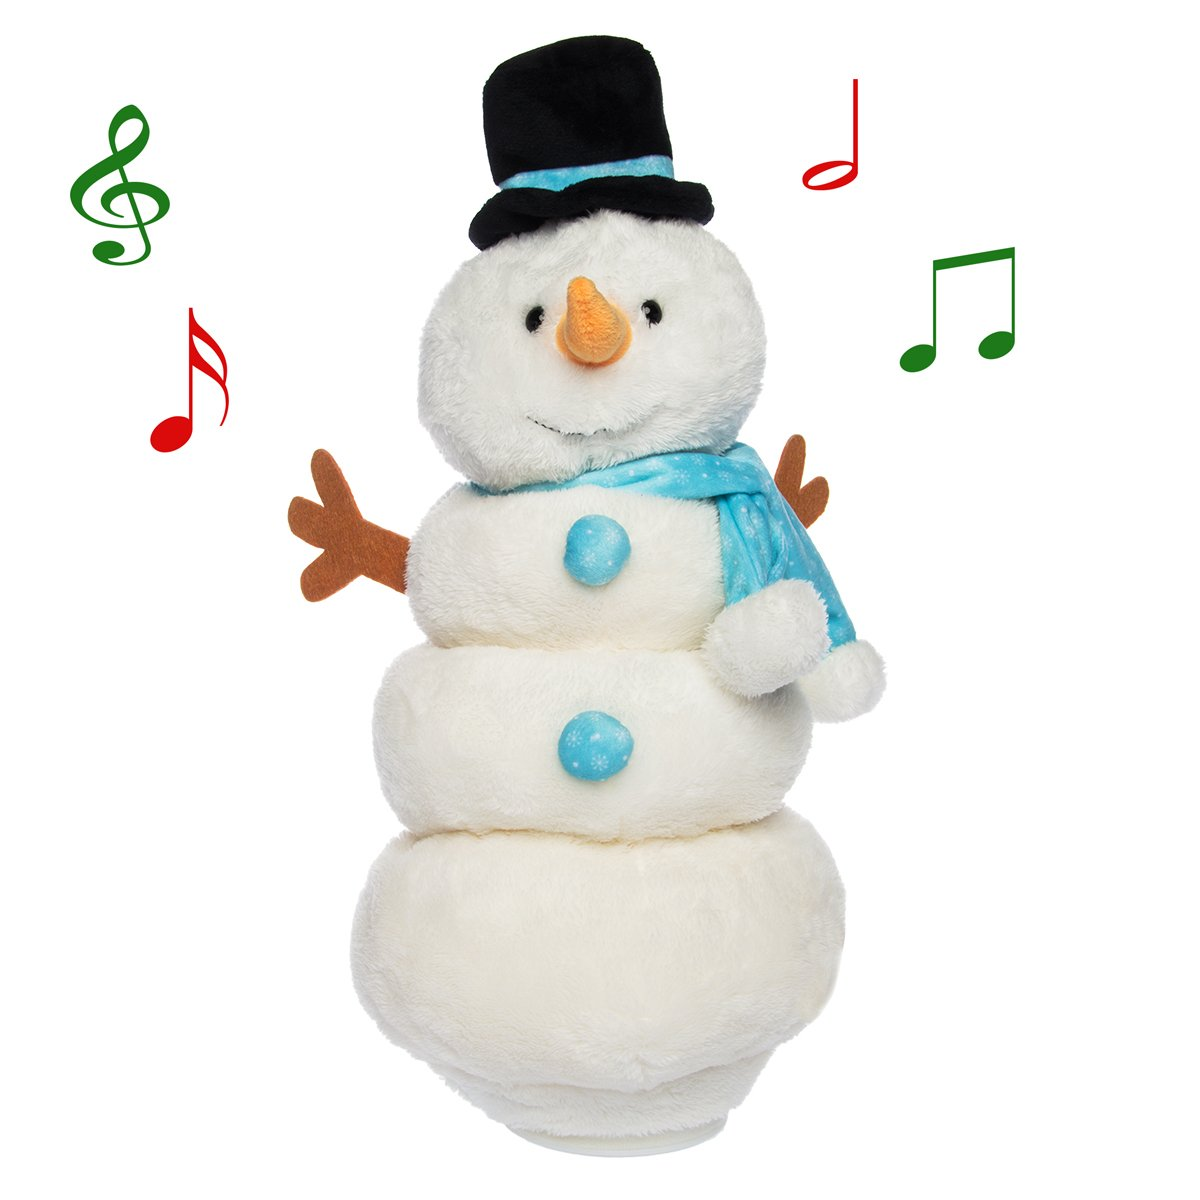 sports shoes a79c5 aae74 Simply Genius Singing Dancing Snowman: Animated Plush Toy Doll Stuffed  Animal Light Up Moving Figure for Christmas Decorations, Snowman  Decorations, ...